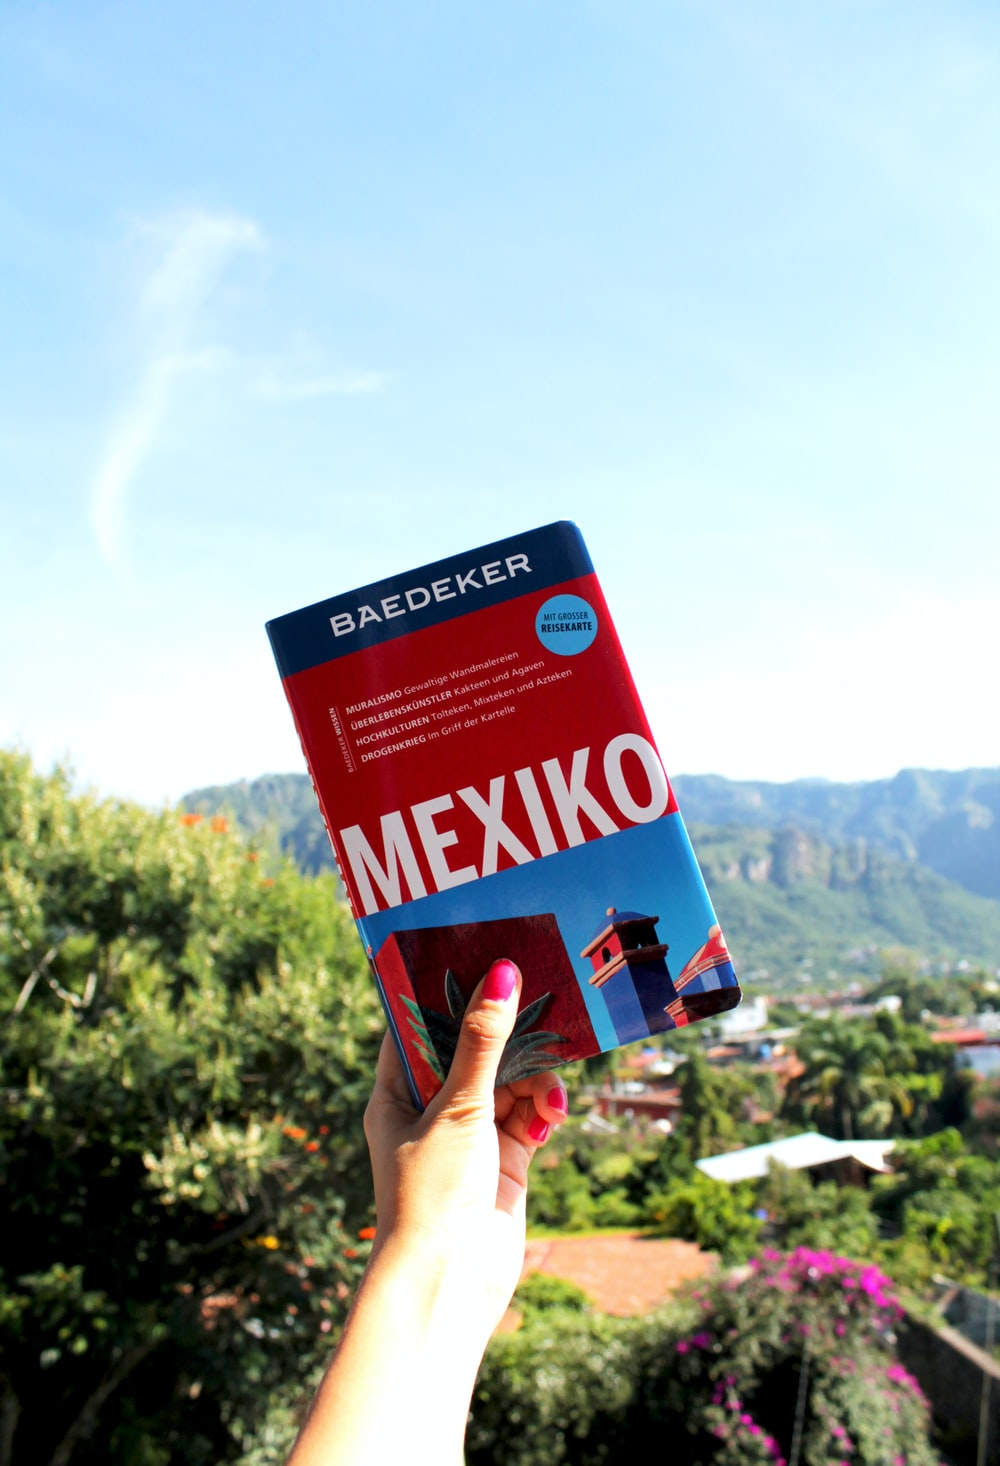 person holding up Mexiko book